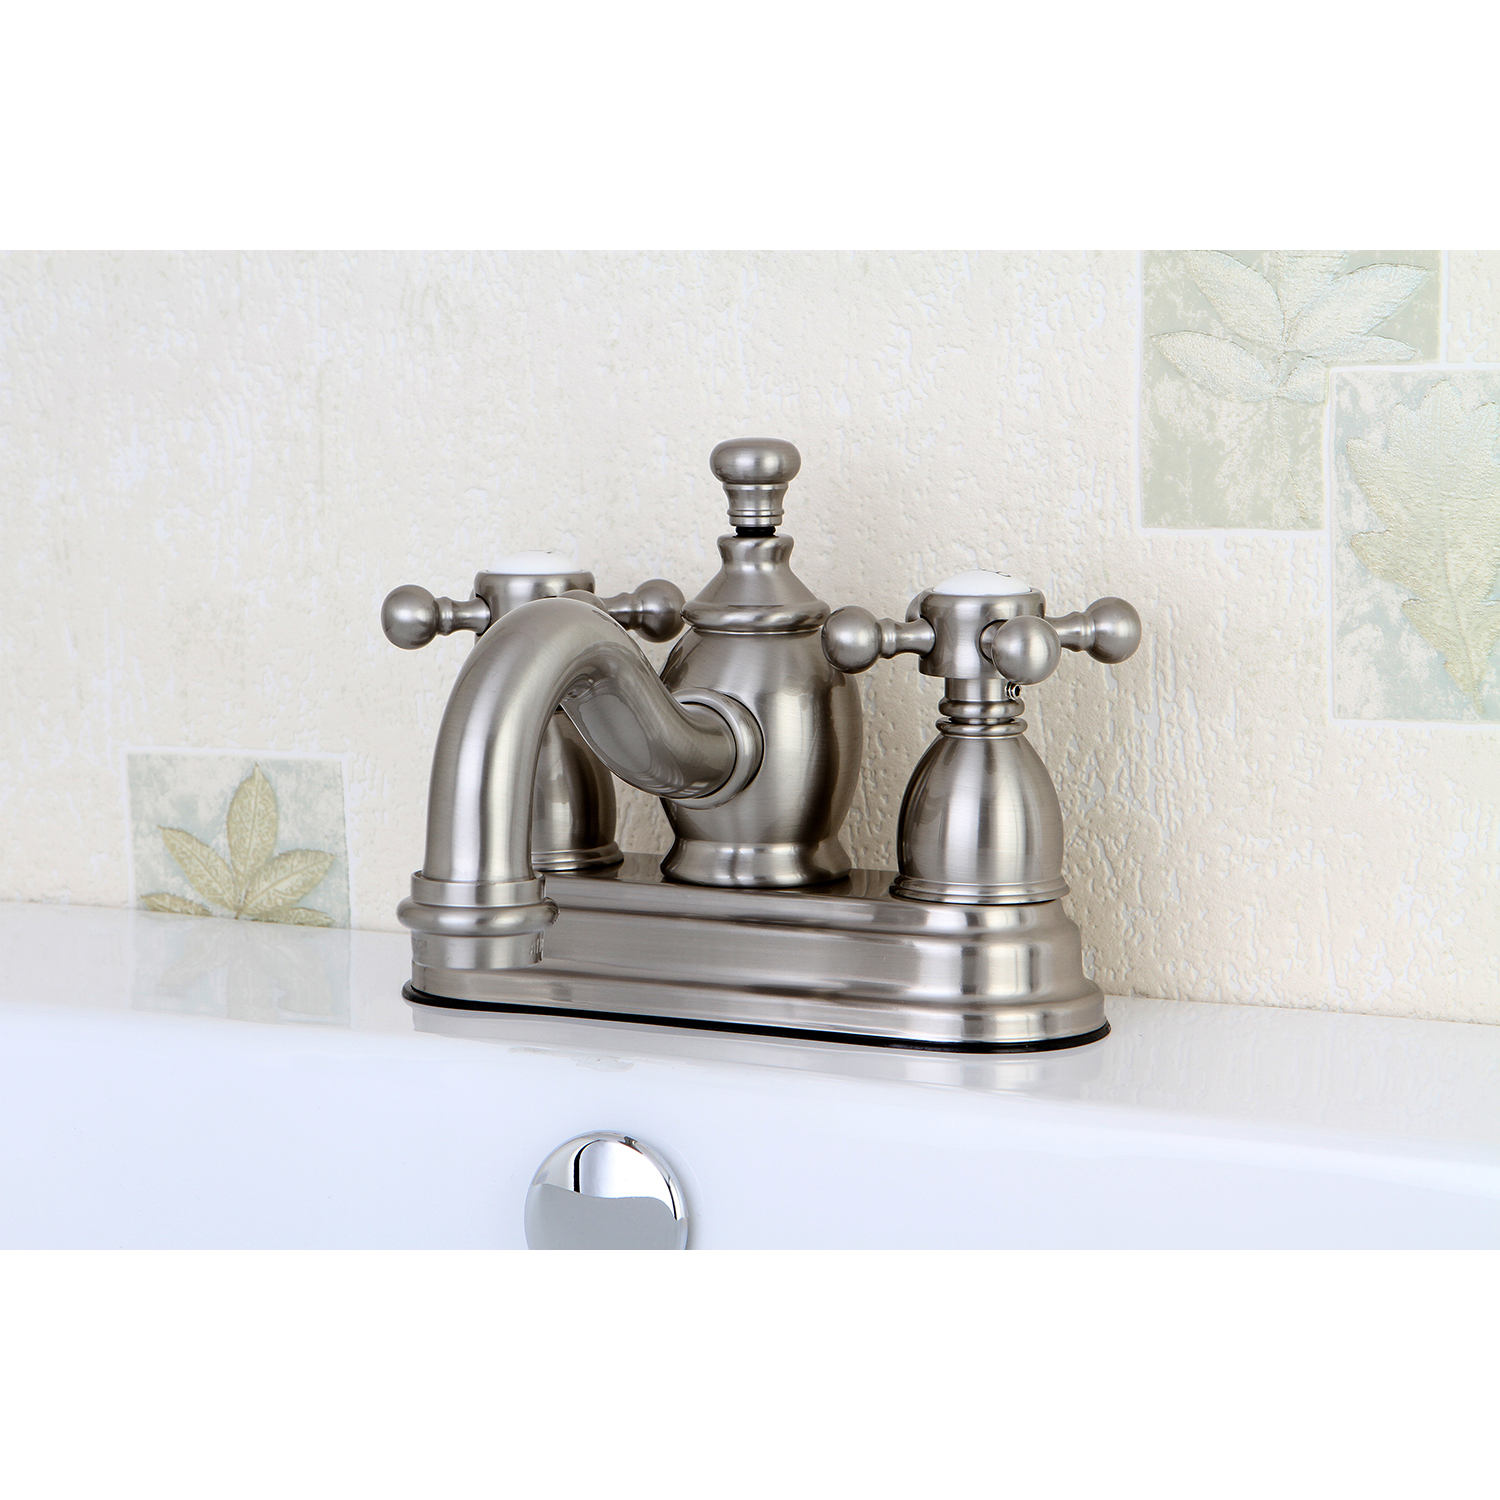 Kingston Brass Ks7108bx Kingston Brass Ks7108bx 4 Centerset Lavatory Faucet Kingston Brass